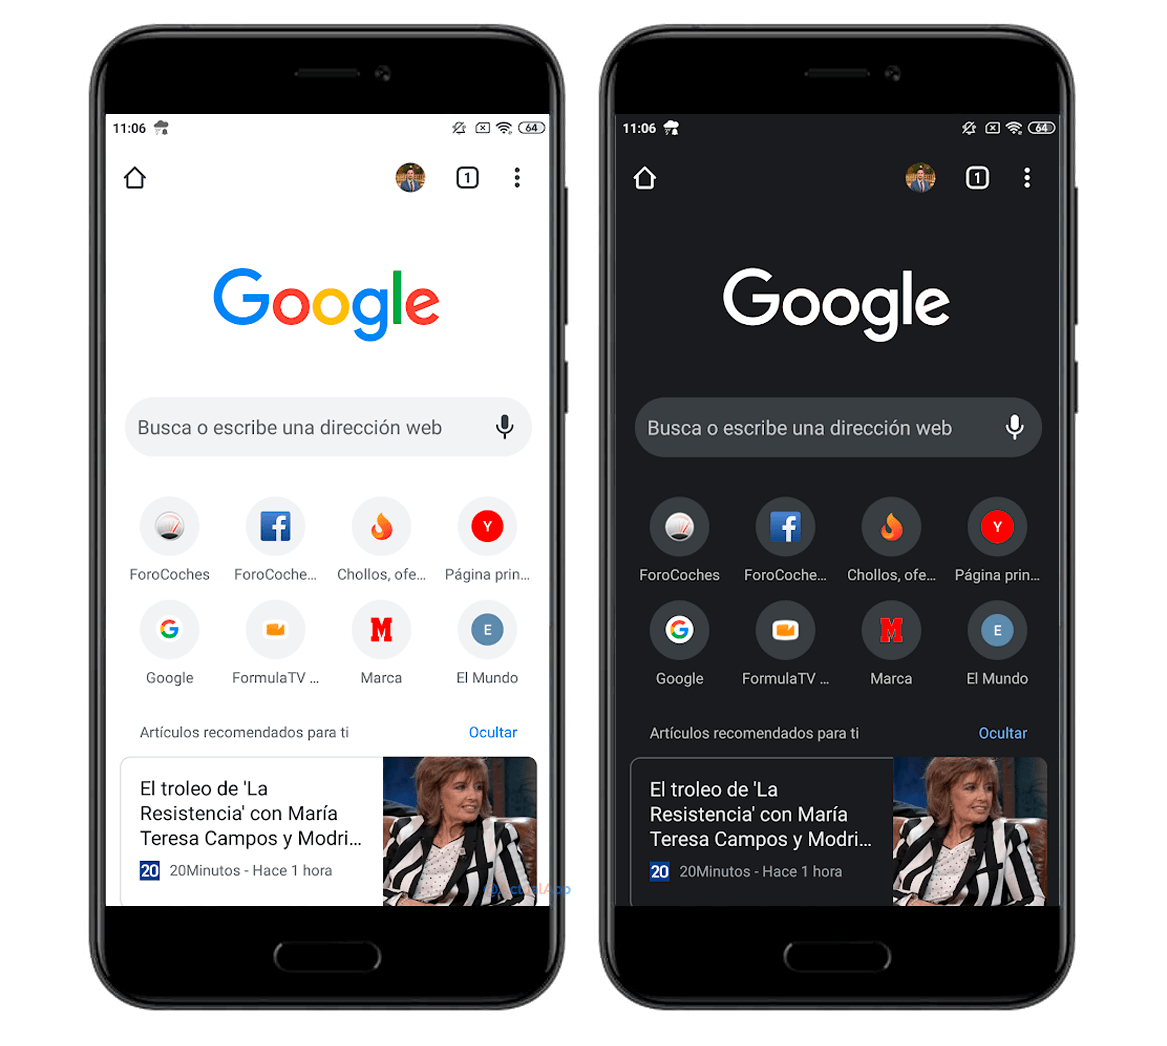 This Is The Dark Mode Of Google Chrome For Mobile That You Can Already Enable